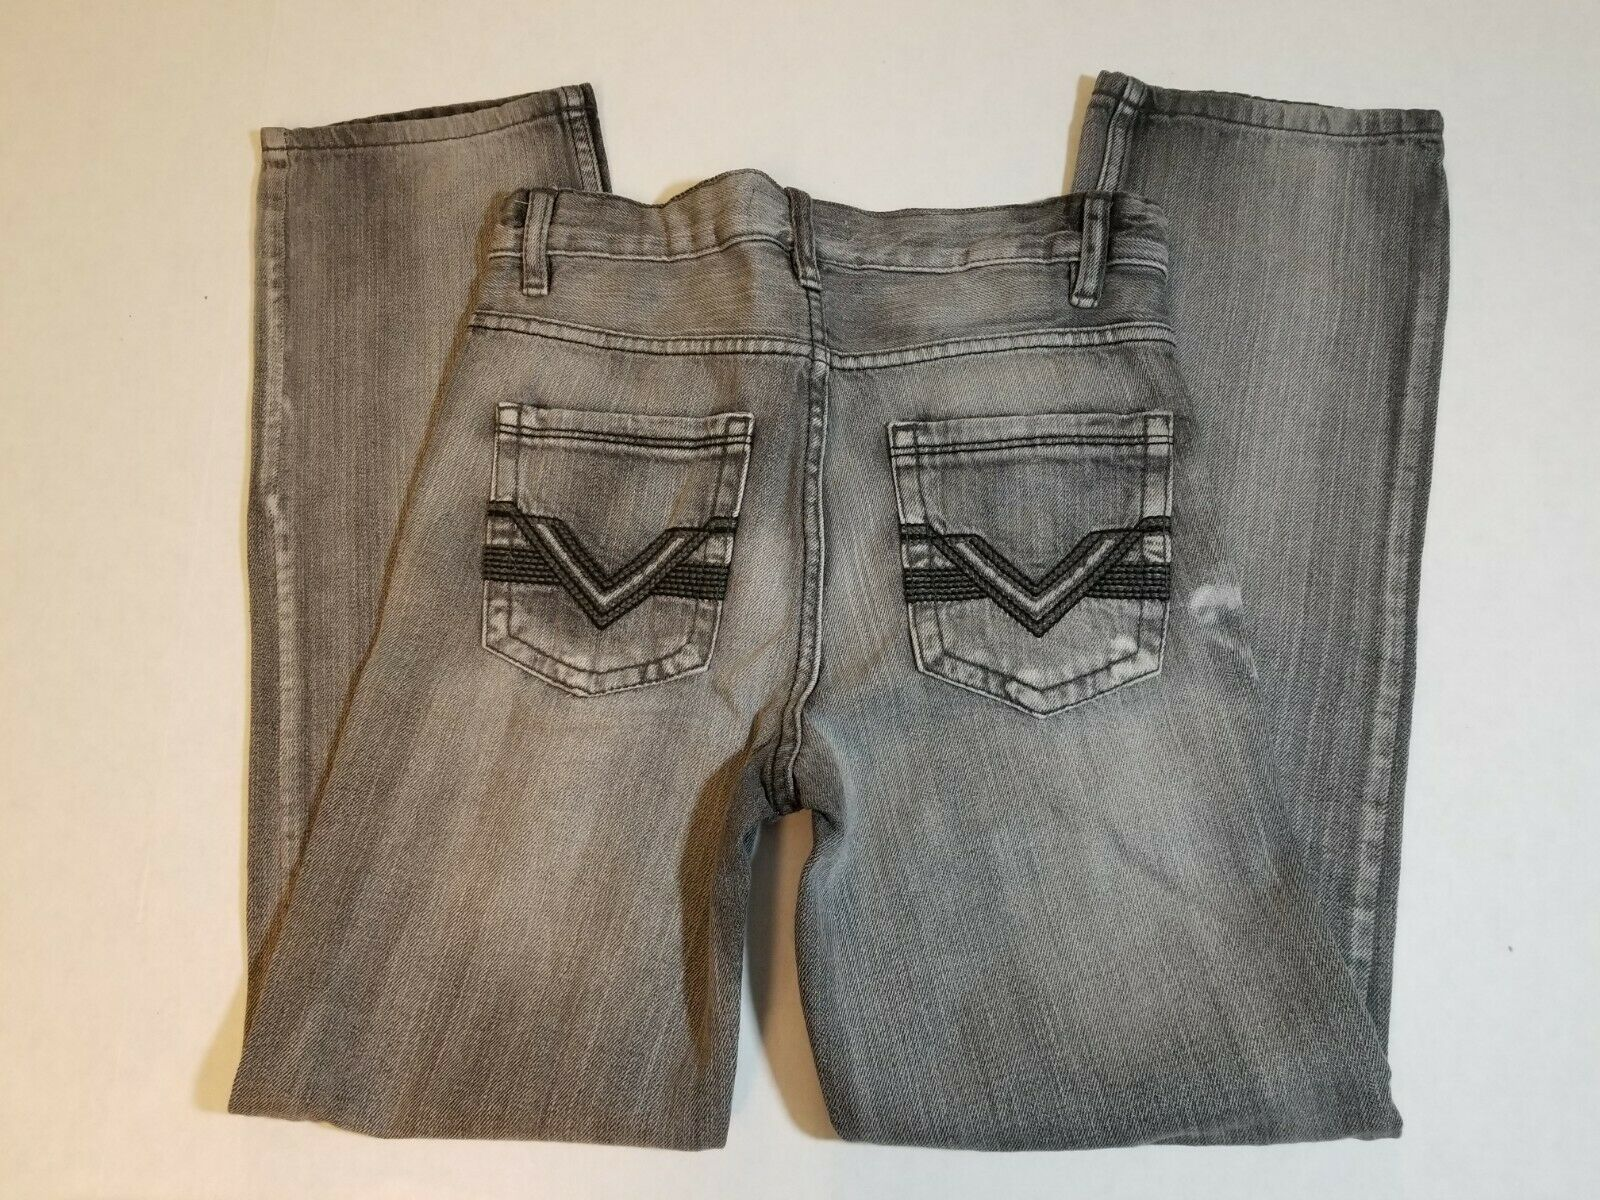 NWT Route 66 Boys Youth Slim Straight Jeans Size 12 Black Denim Pants